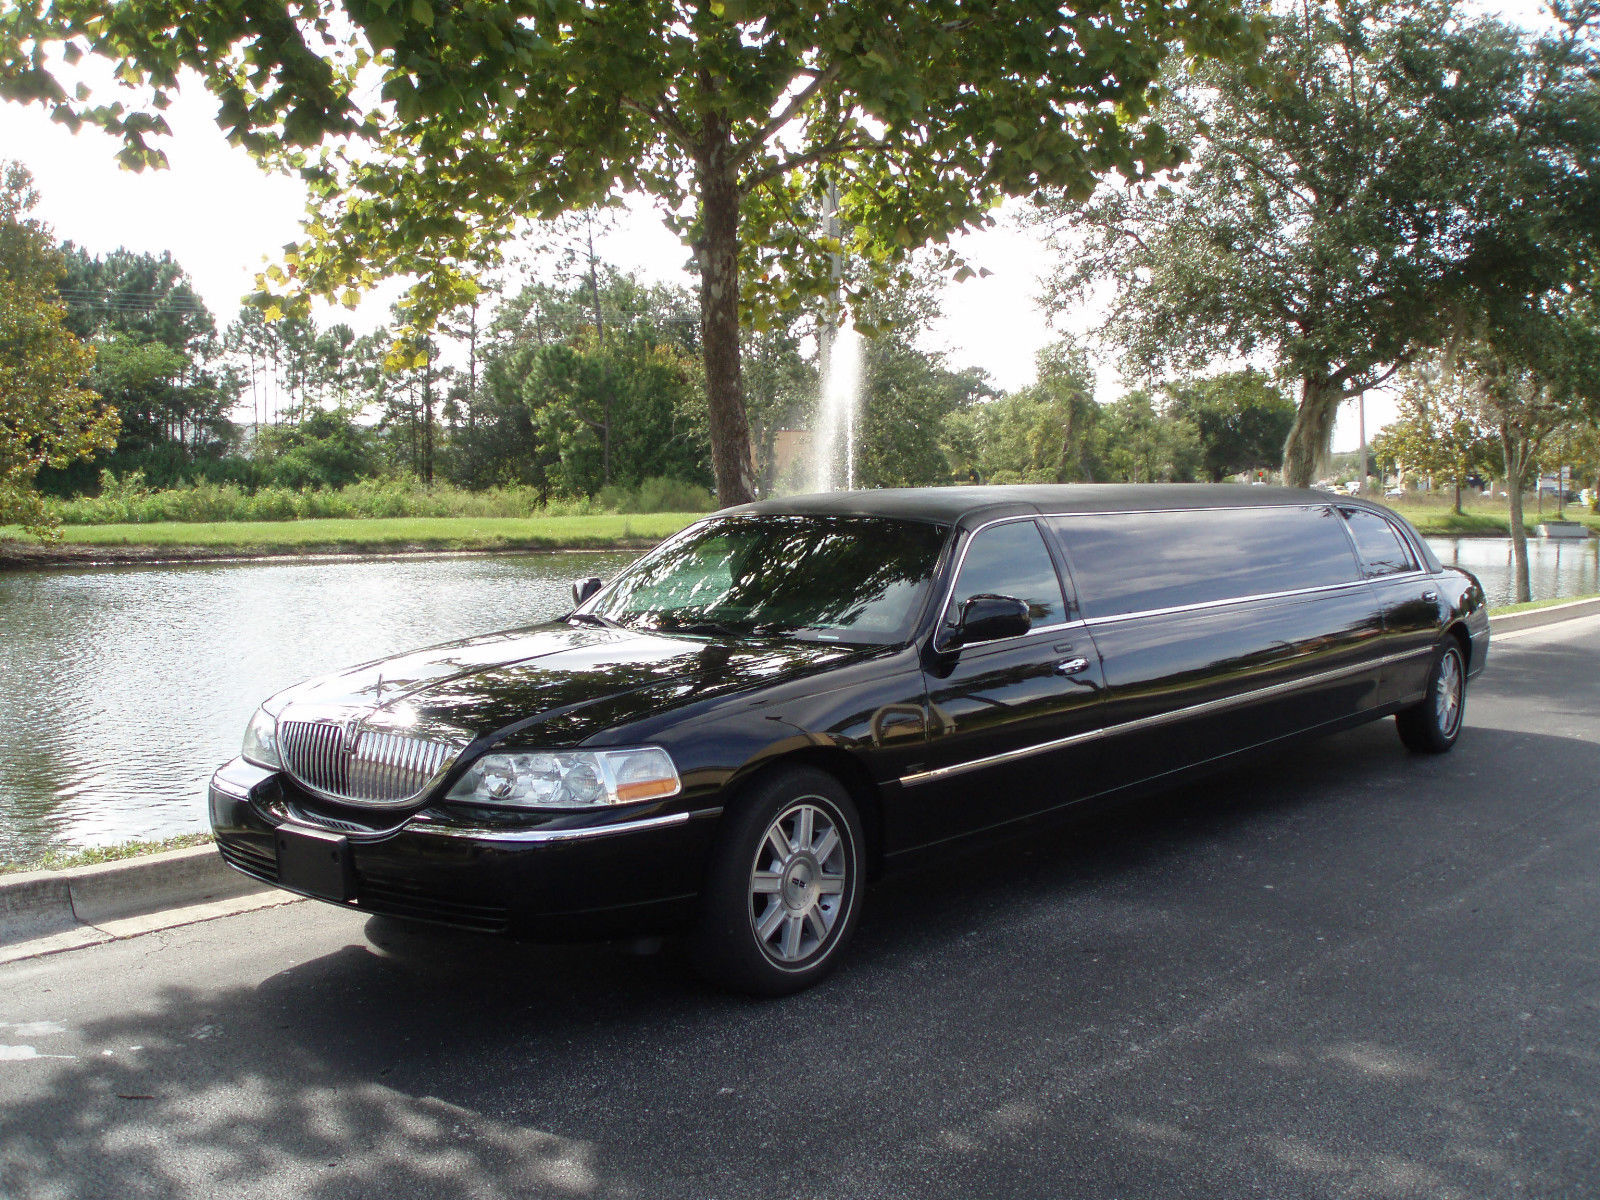 2007 10 Passenger Lincoln Town Car Limousine For Sale